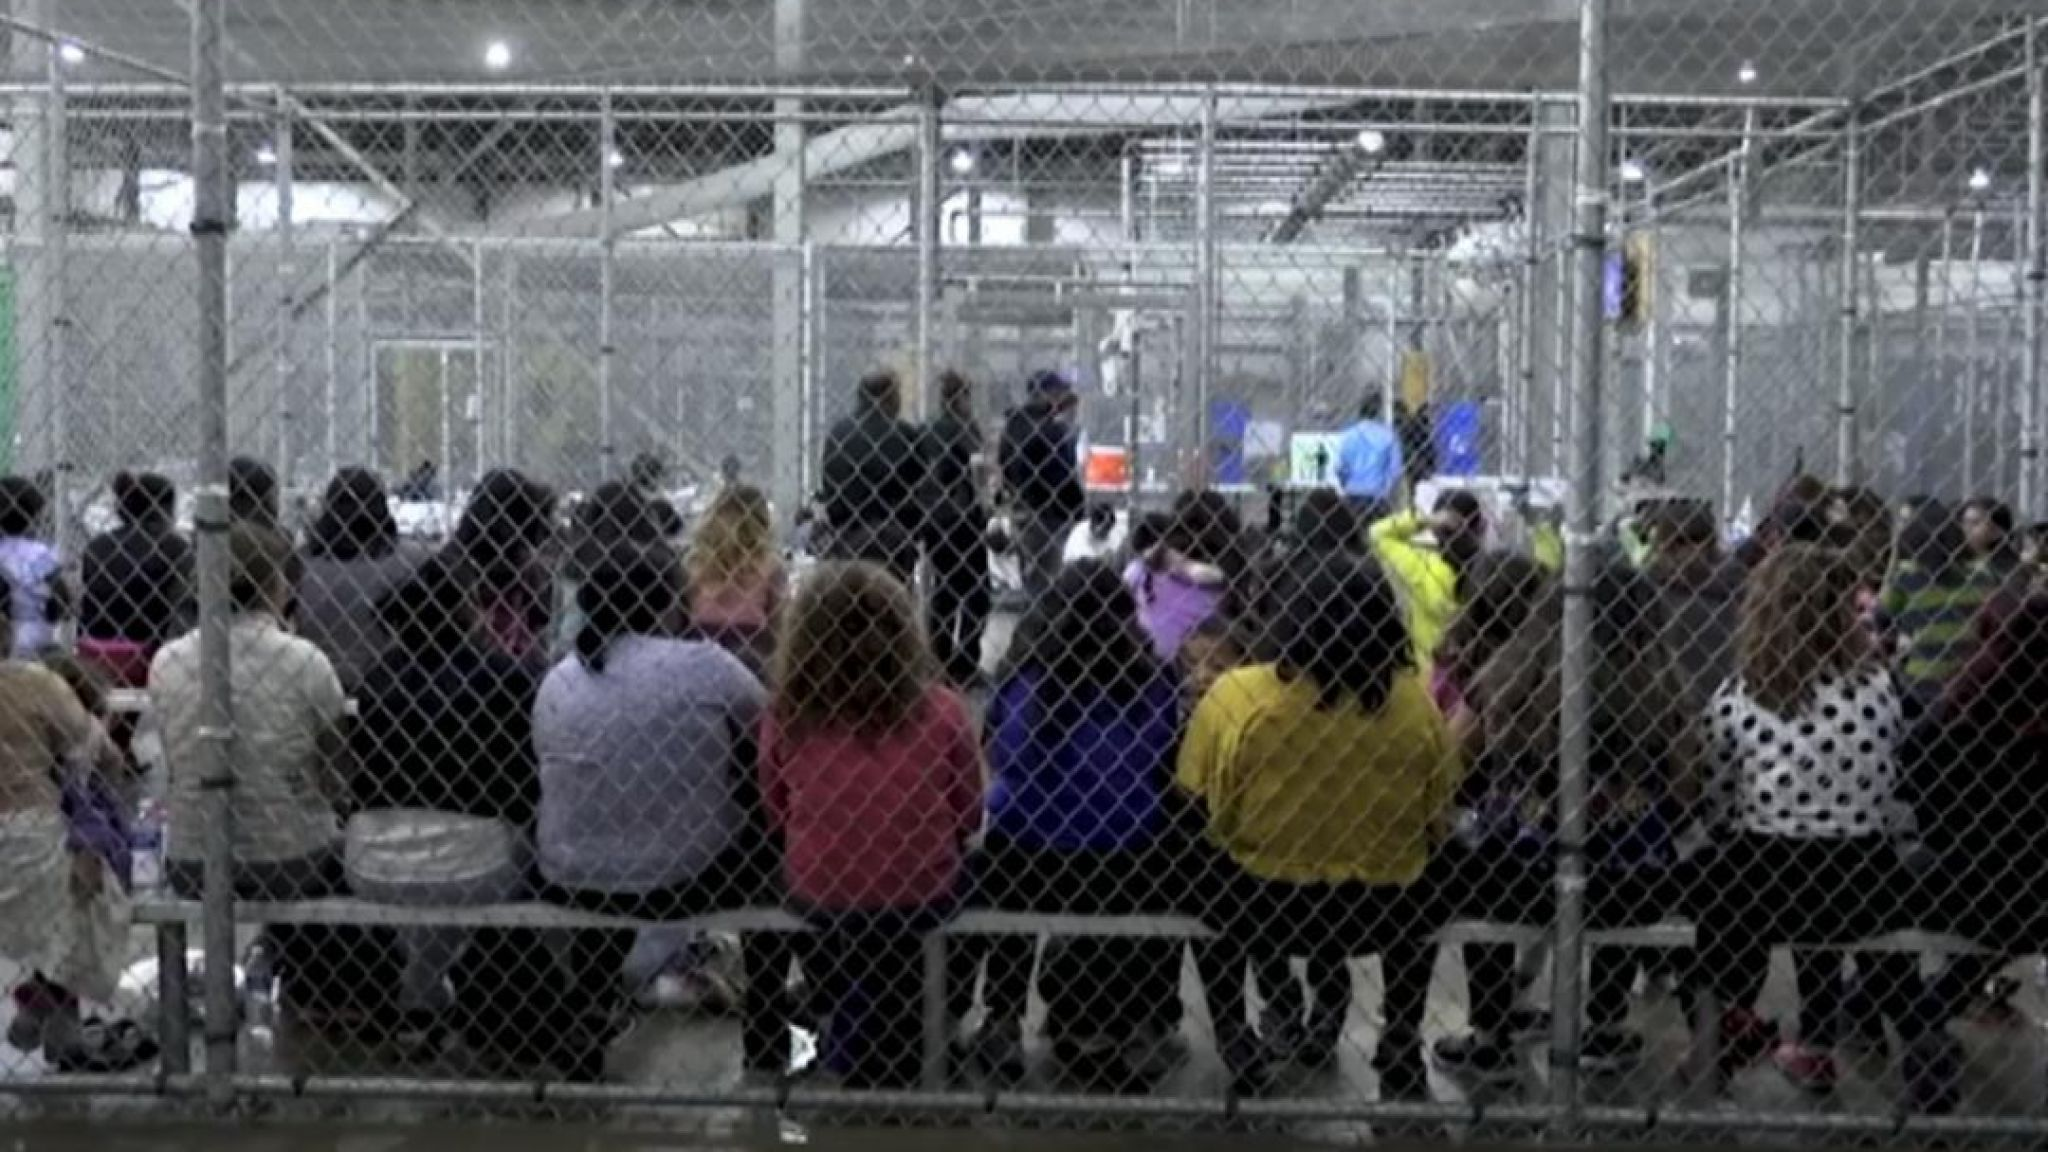 Immigrant Children in Cages